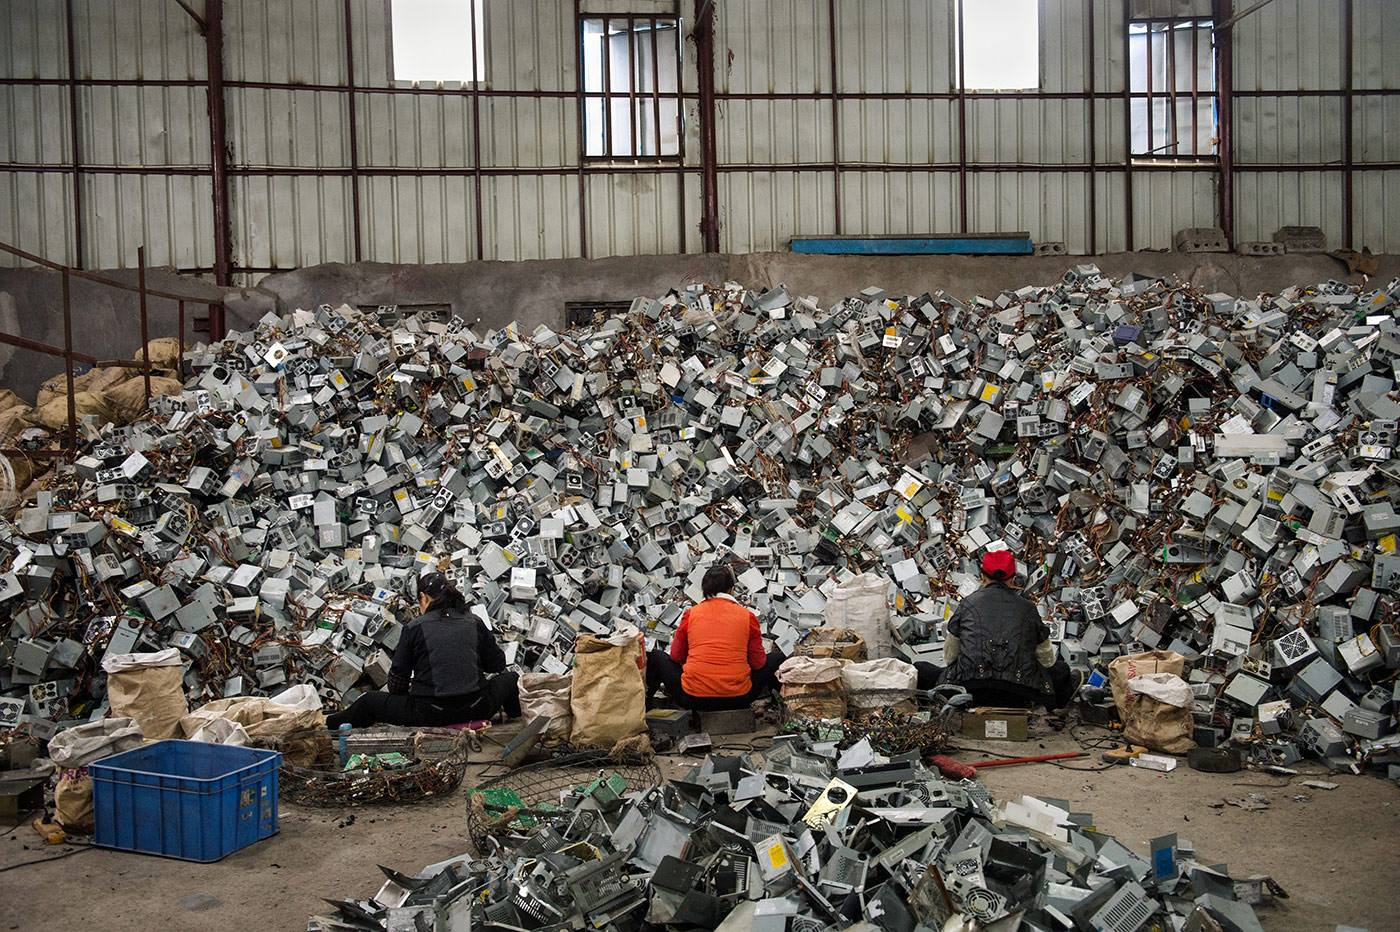 E-waste Recycling 101: Where to Donate Your Old Electronics, Phones in India